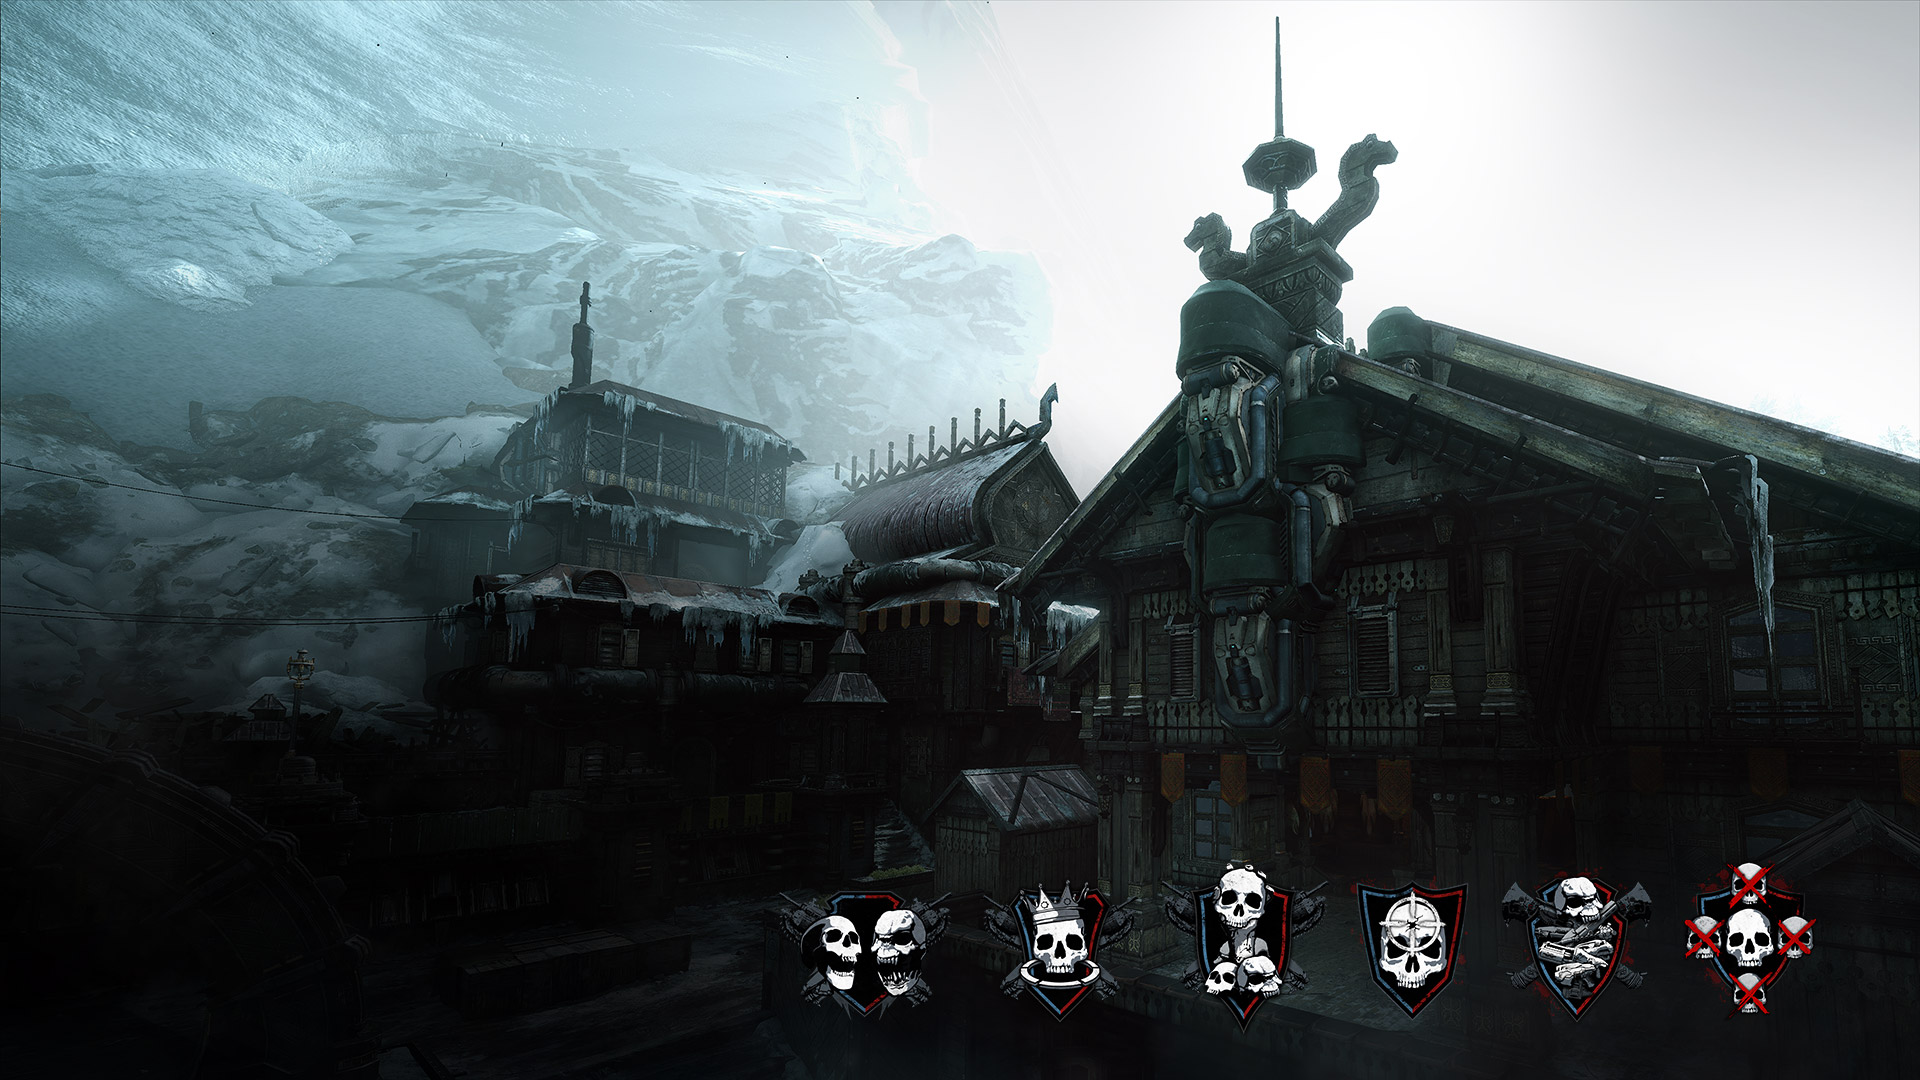 Gears of War 4 - Active Maps | Gears of War - Official Site on modern warfare 2 map list, left 4 dead map list, wolfenstein map list, call of duty black ops 2 map list, battlefield bad company 2 map list, titanfall map list, just cause 2 map list, rainbow six vegas map list, team fortress 2 map list, halo map list, battlefield 3 map list, modern warfare 3 map list, doom 3 map list, minecraft map list, borderlands 2 map list, red orchestra 2 map list, cod black ops map list, destiny map list, metal gear solid map list, gears of war 1 map list,